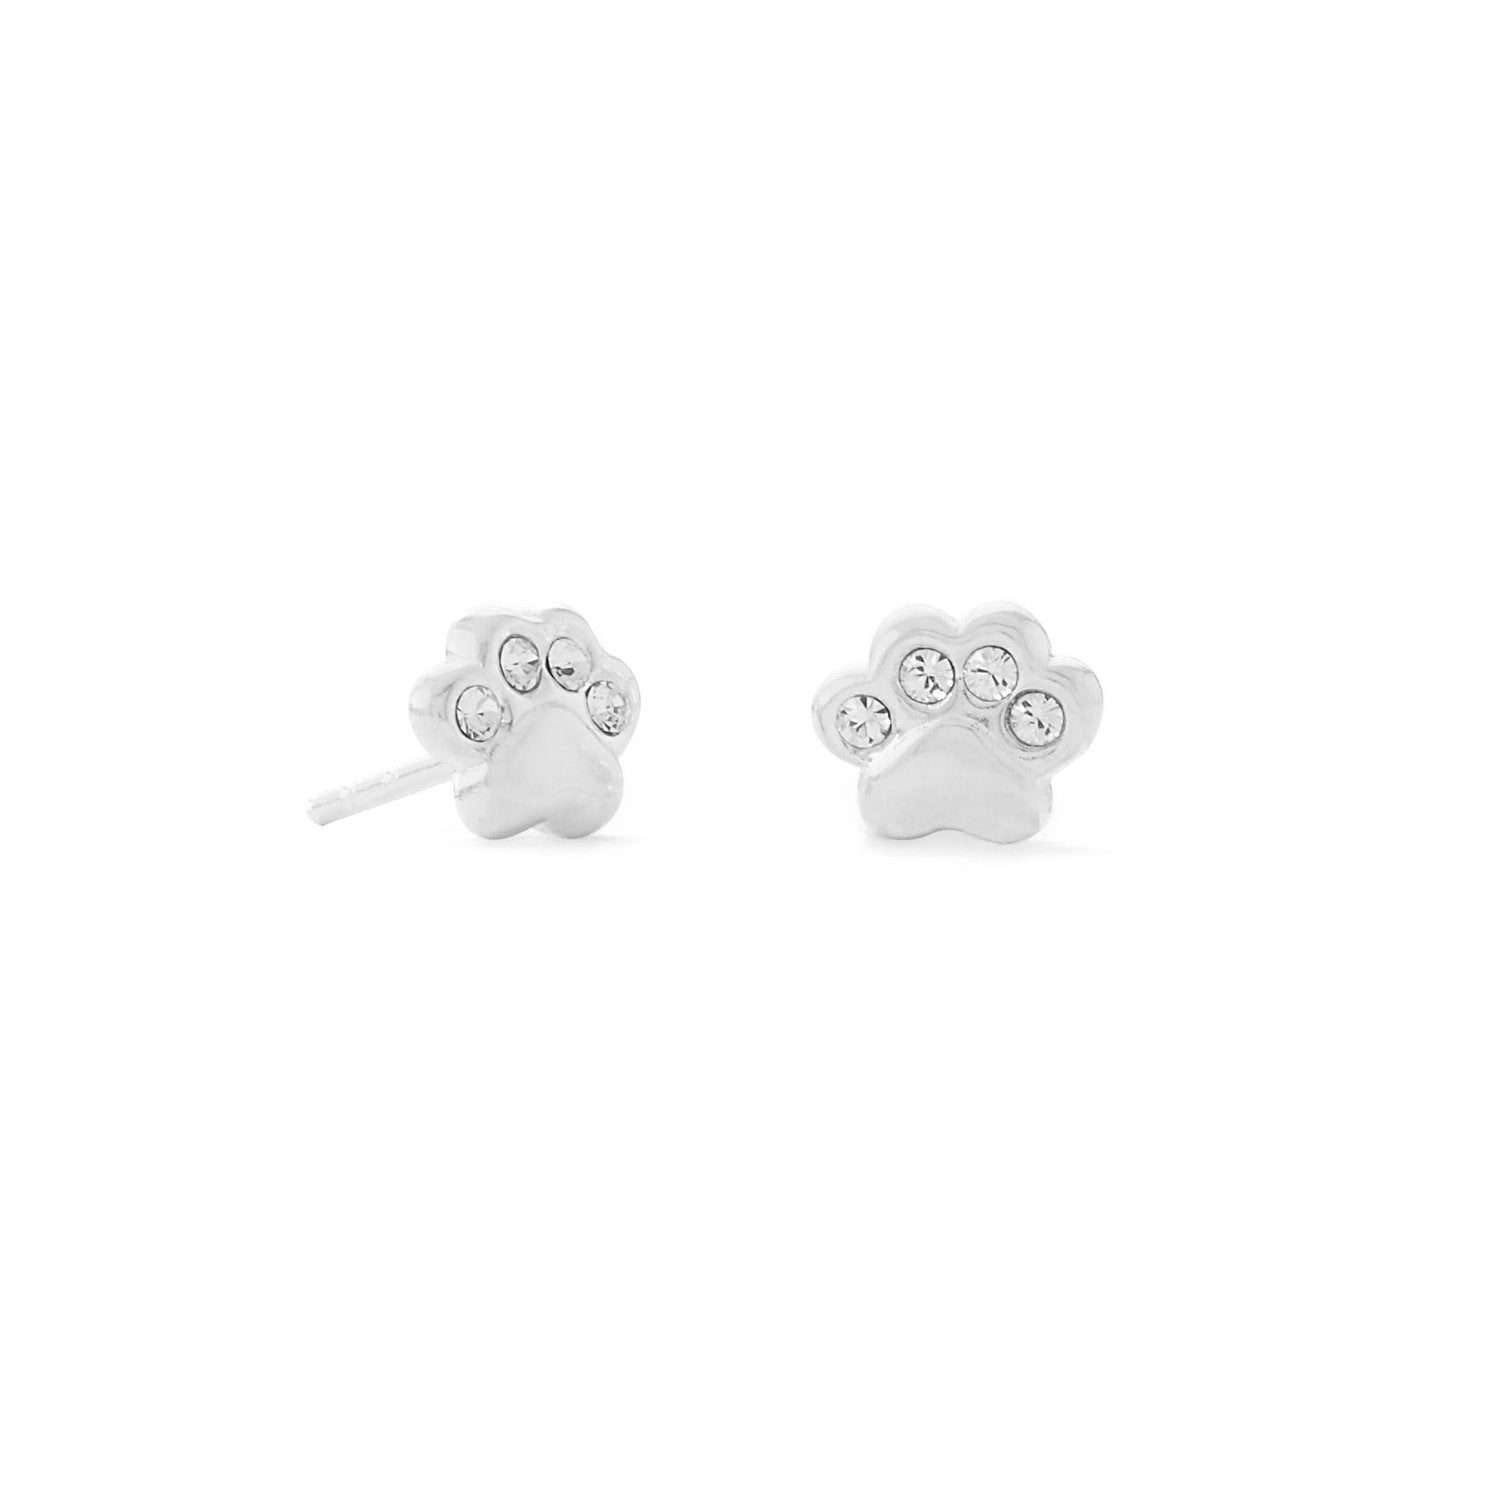 Polished Crystal Paw Print Stud Earrings - the-southern-magnolia-too